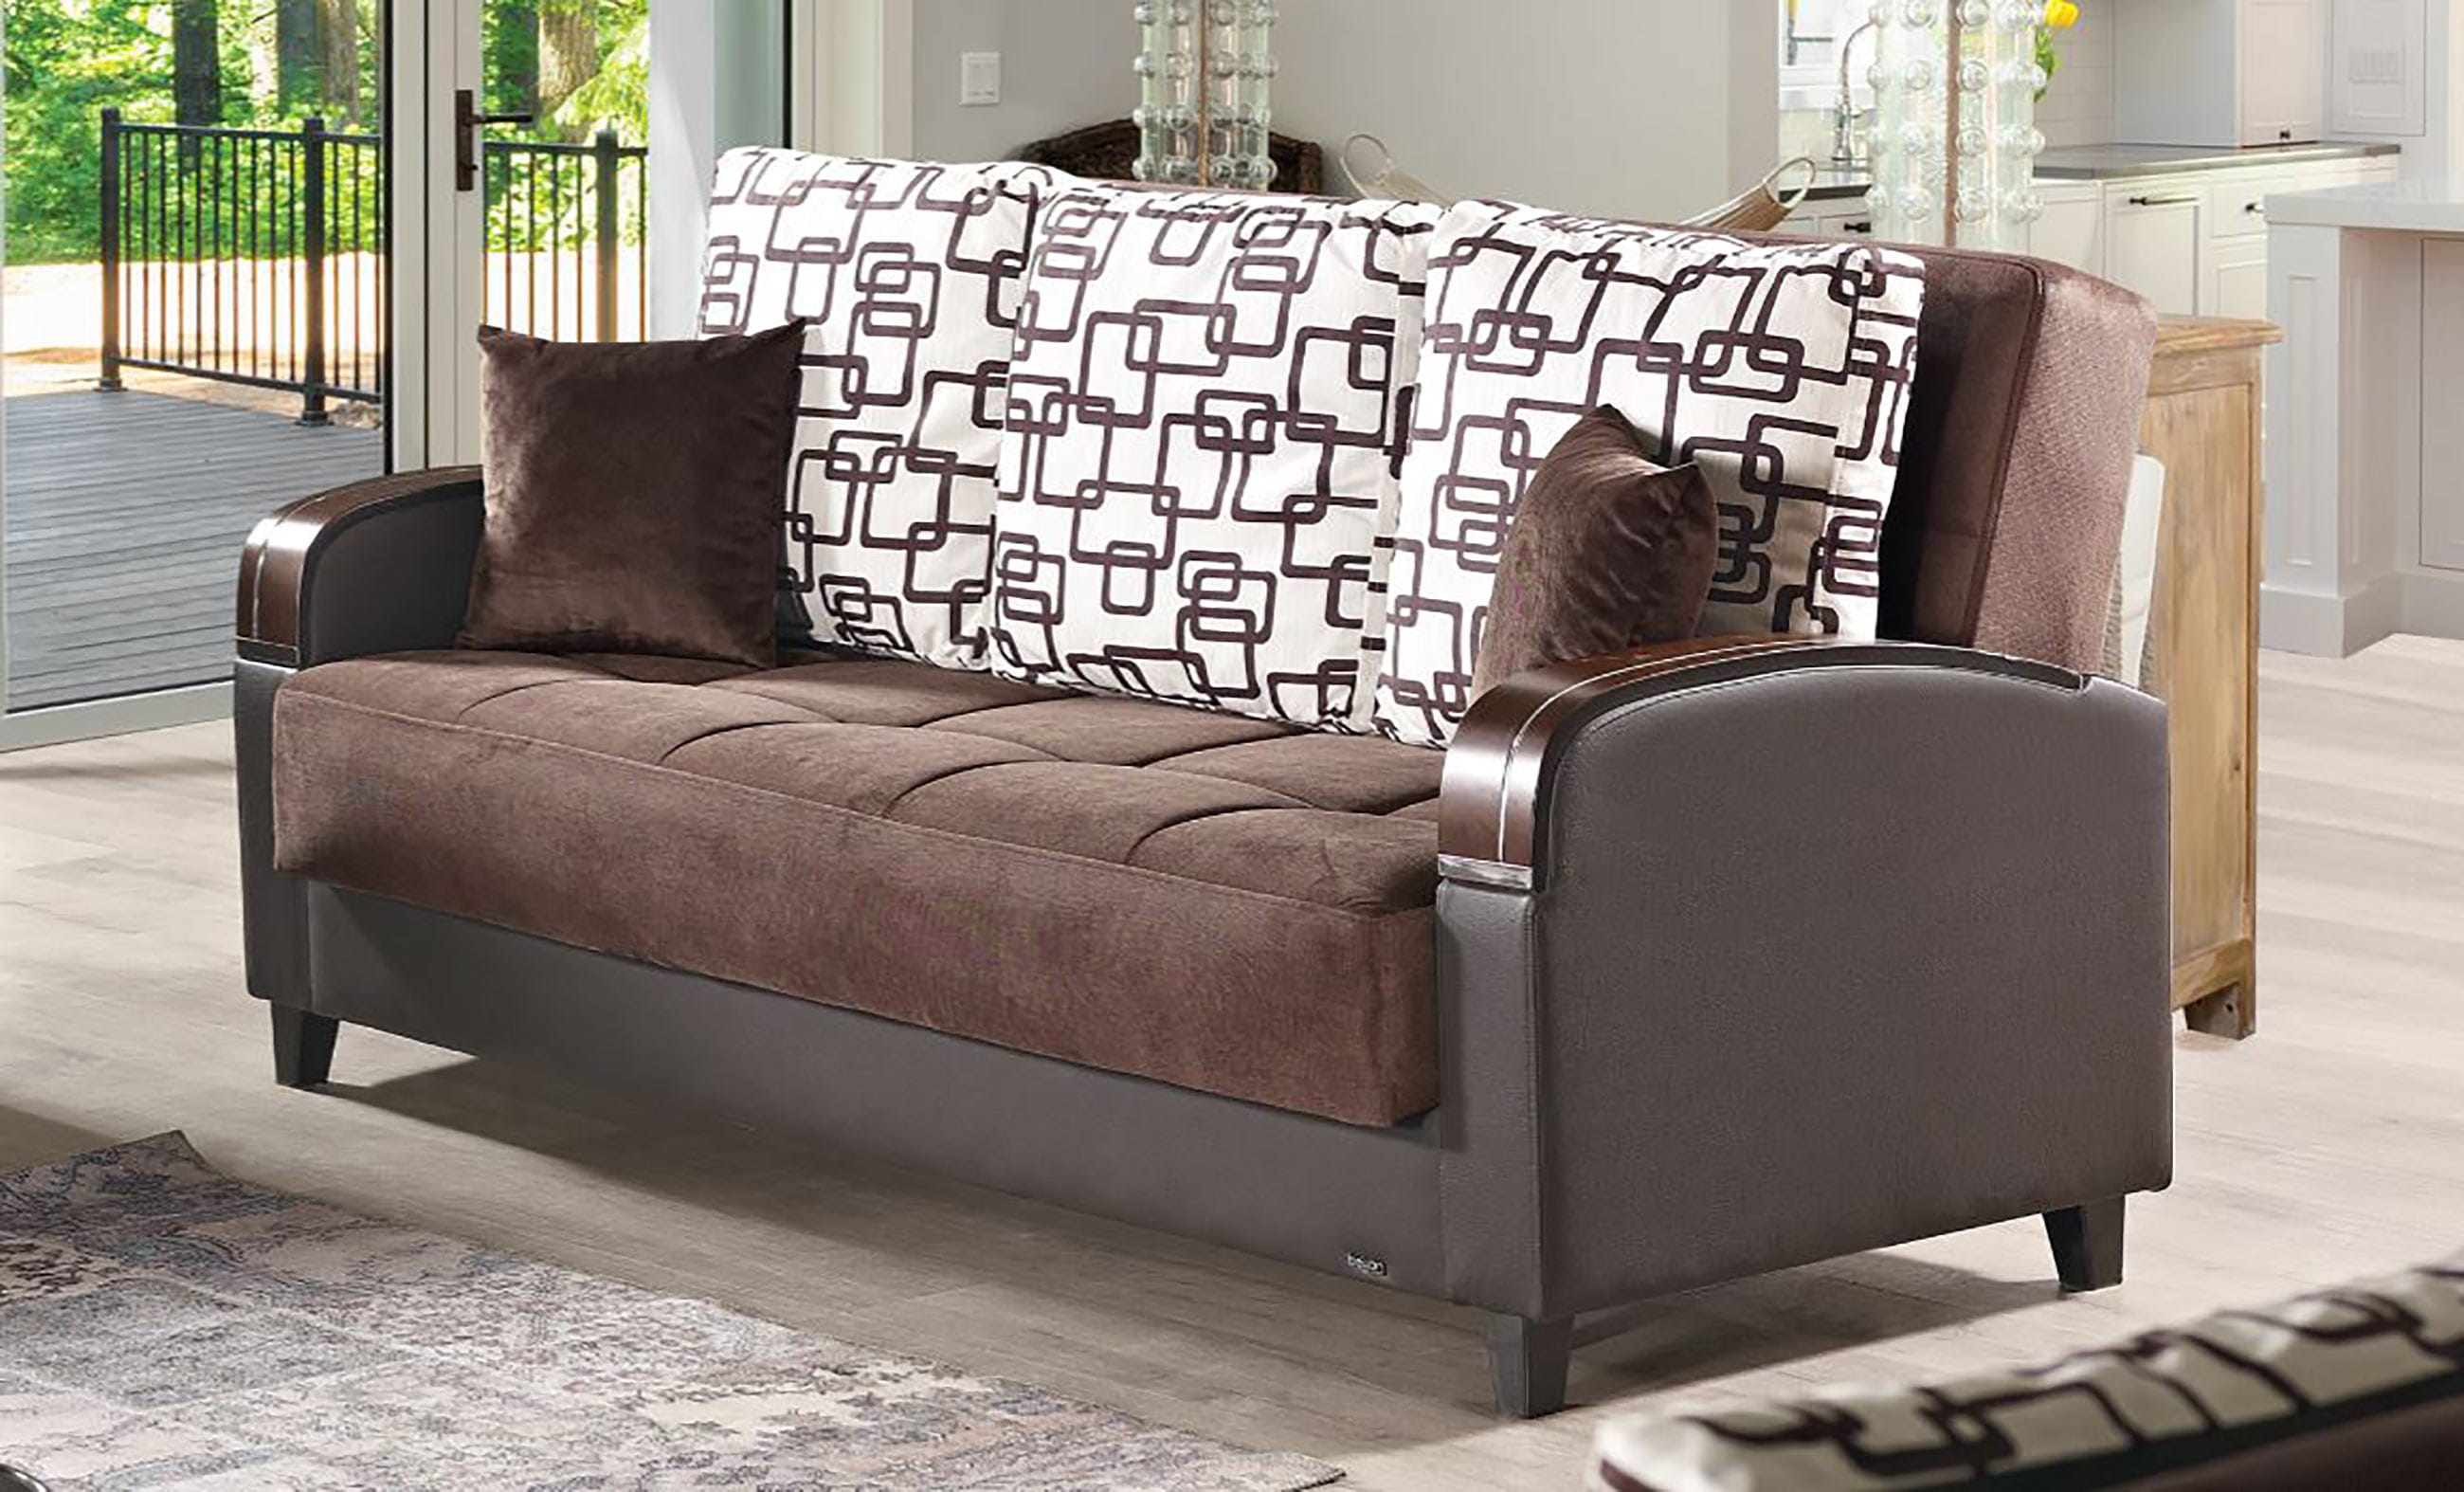 empire furniture sofa modern comfortable leather soho brown fabric bed by usa